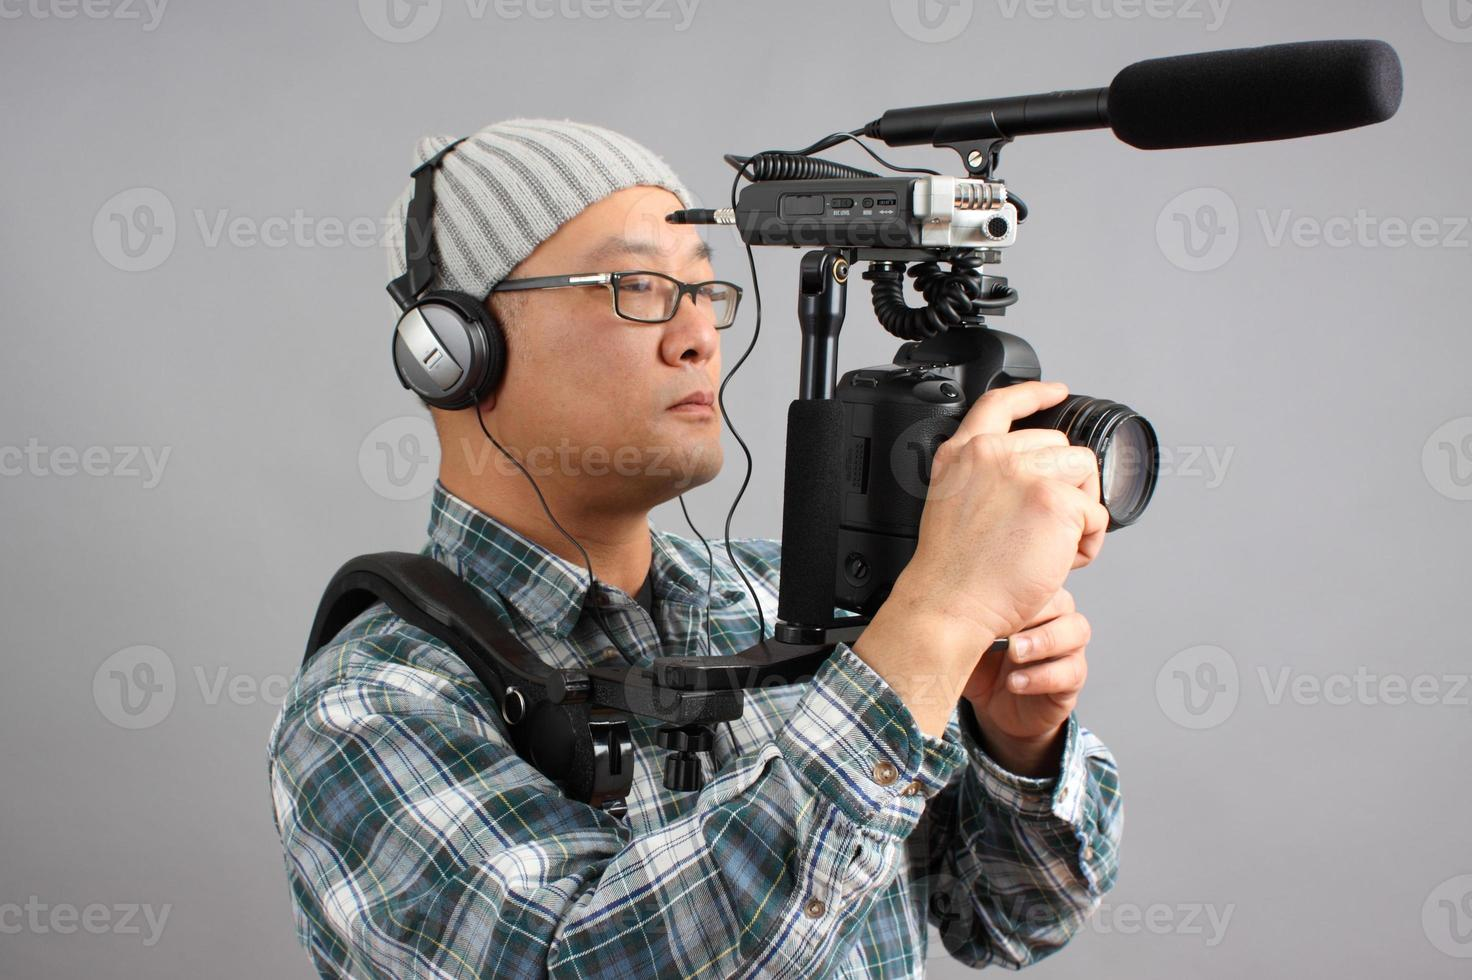 Man with HD SLR camera and audio equipment photo